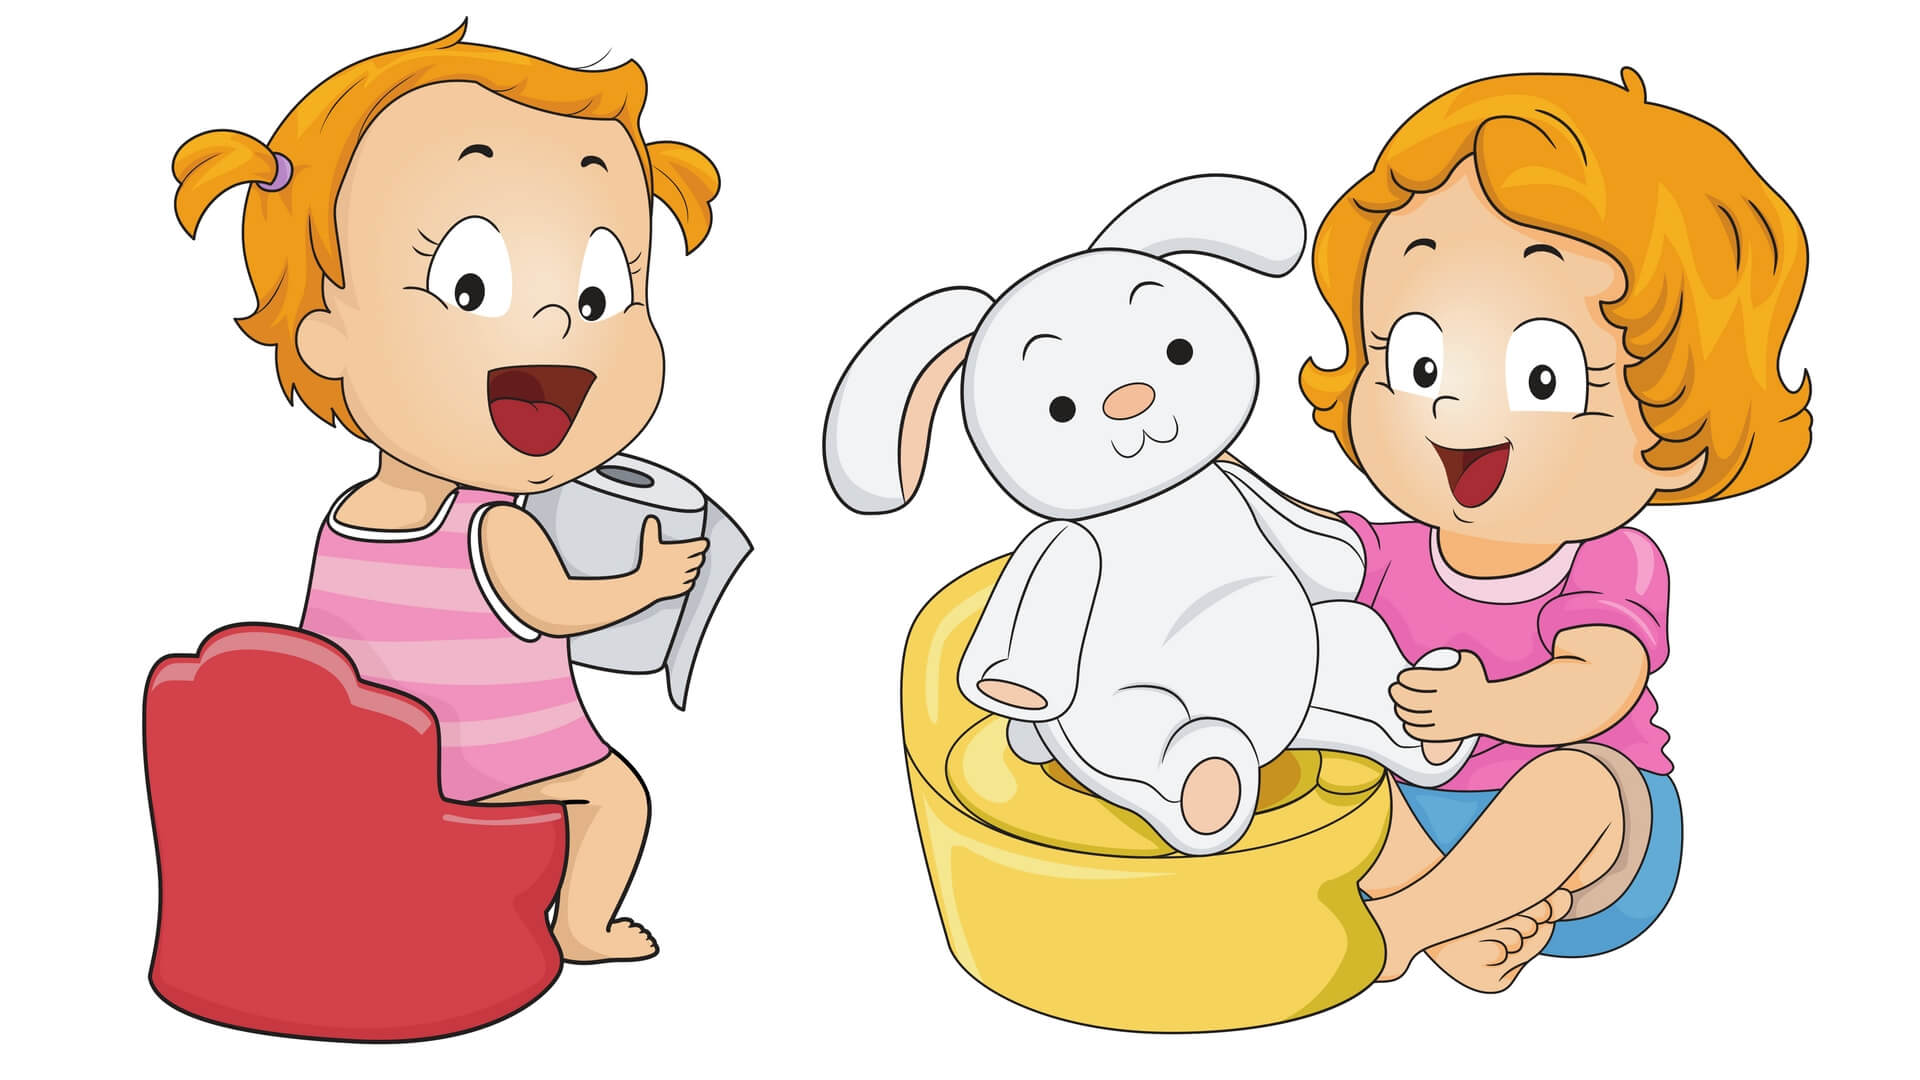 potty clipart at getdrawings com free for personal use potty rh getdrawings com